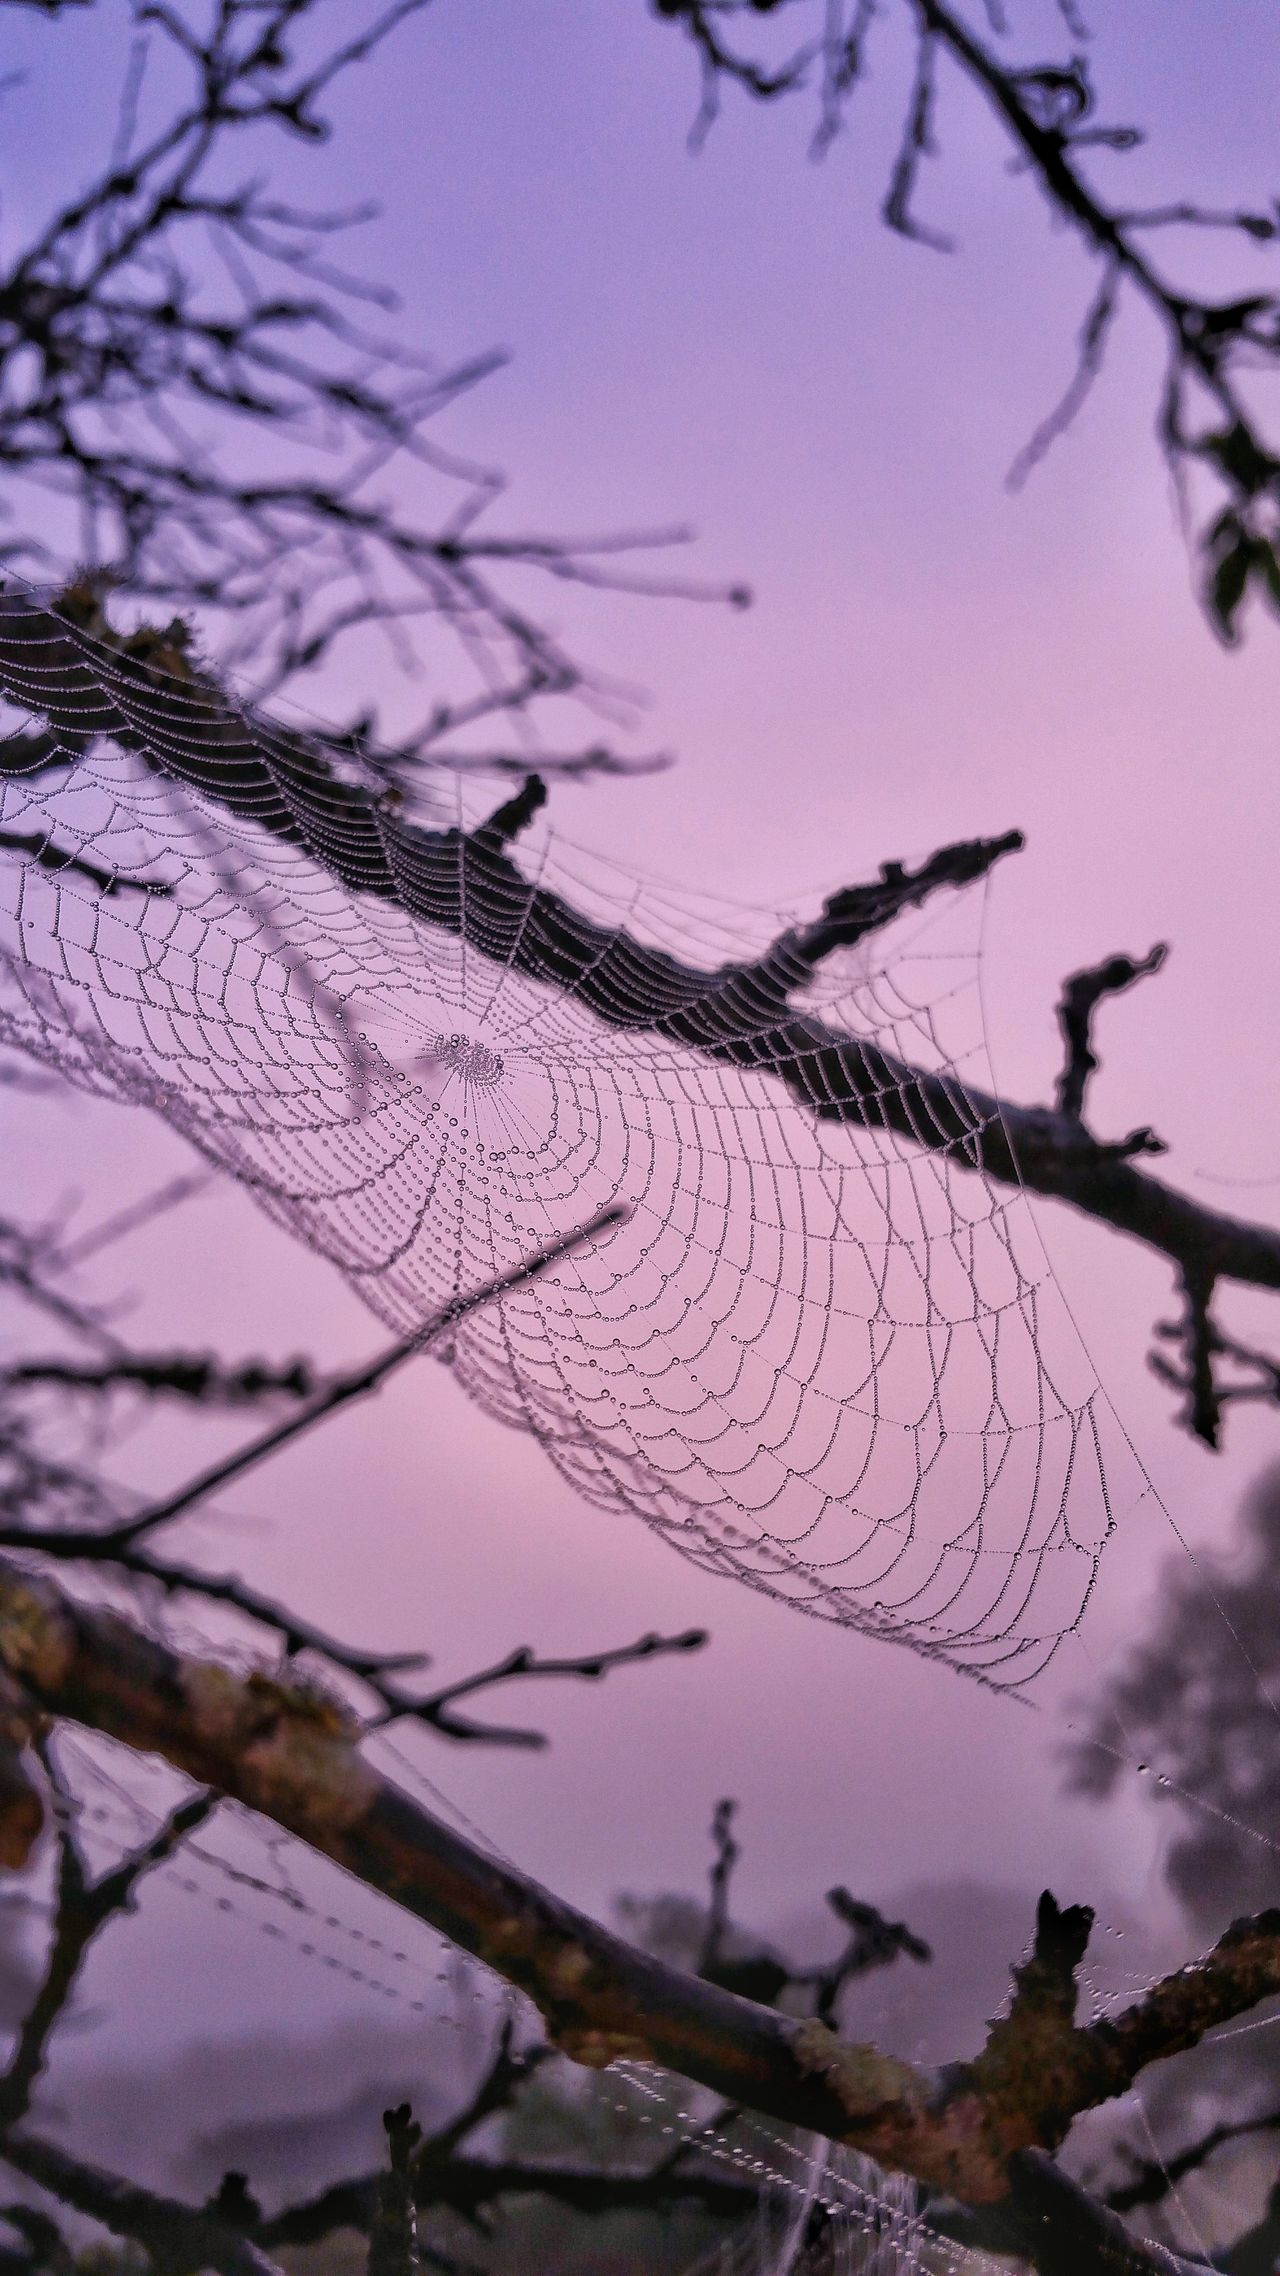 Spider Web Web Dew Dewdrops Bare Tree Dew Drops On Spider Web Sunrise Dawn Sky Beauty In Nature Silhouette Scenics Outdoors Nature Foggy Morning Foggy Weather Landscape Tree Limbs Fall Weather Pastel Colors Pastel Power My Year My View